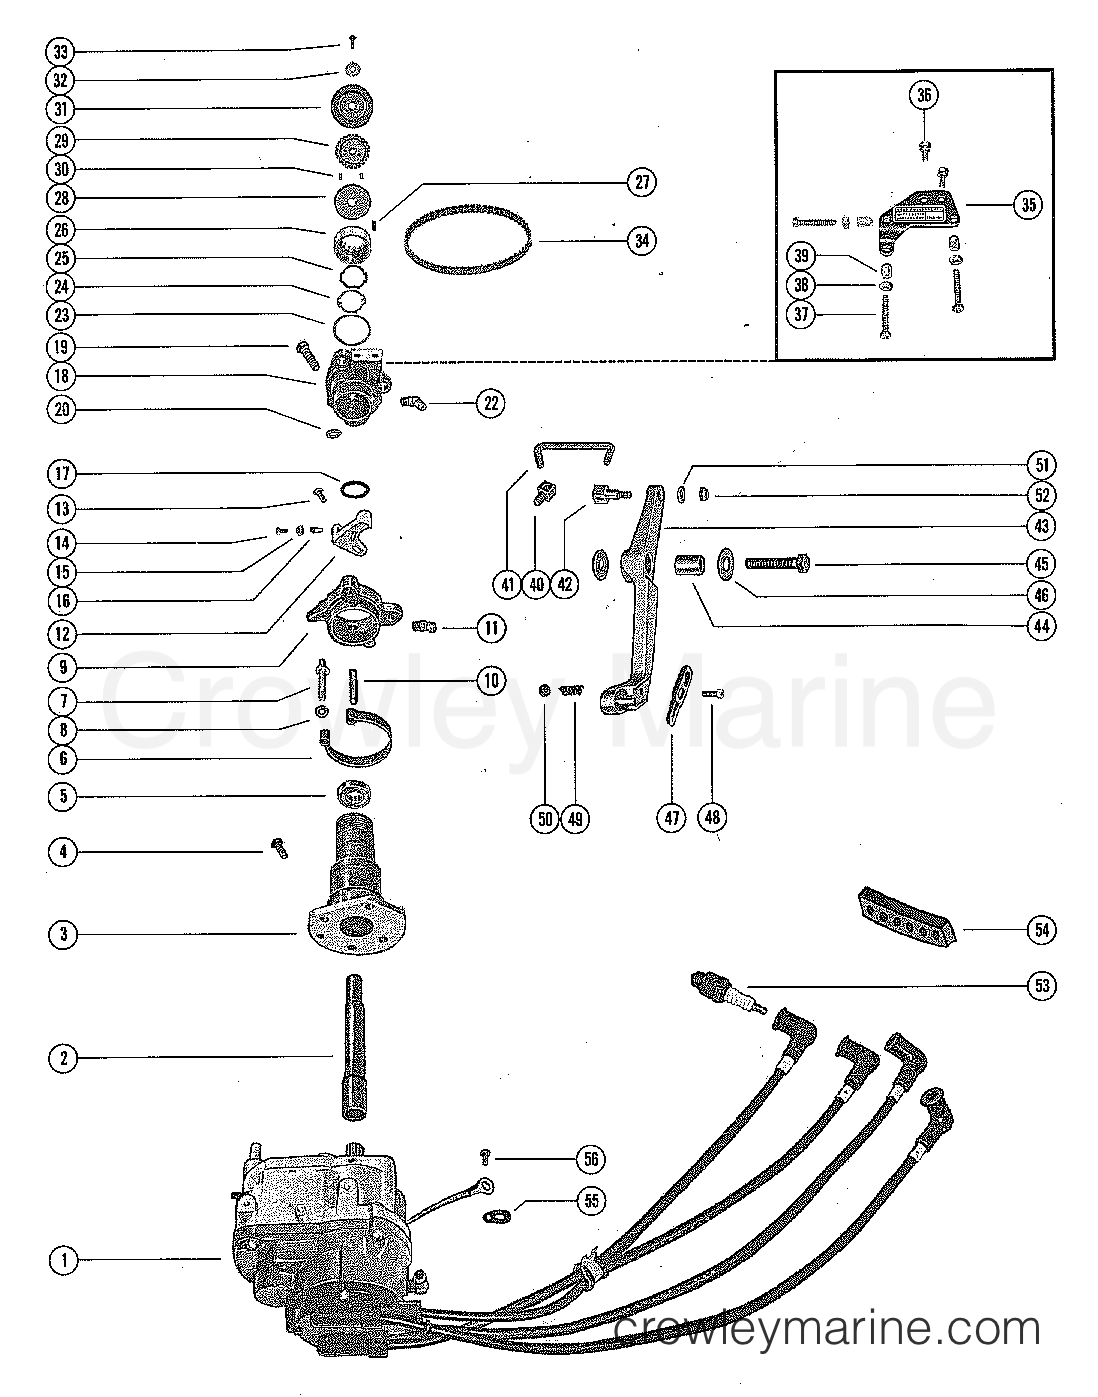 Ignition Driver And Pilot Assembly